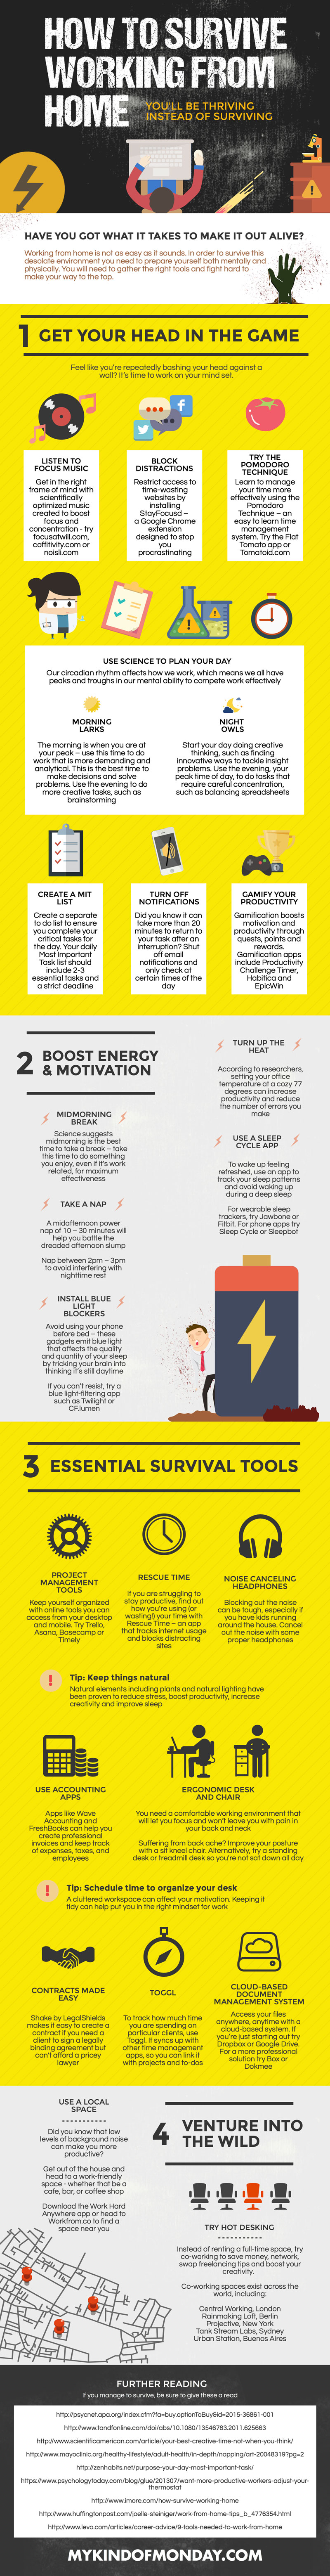 How to survive working from home infographic